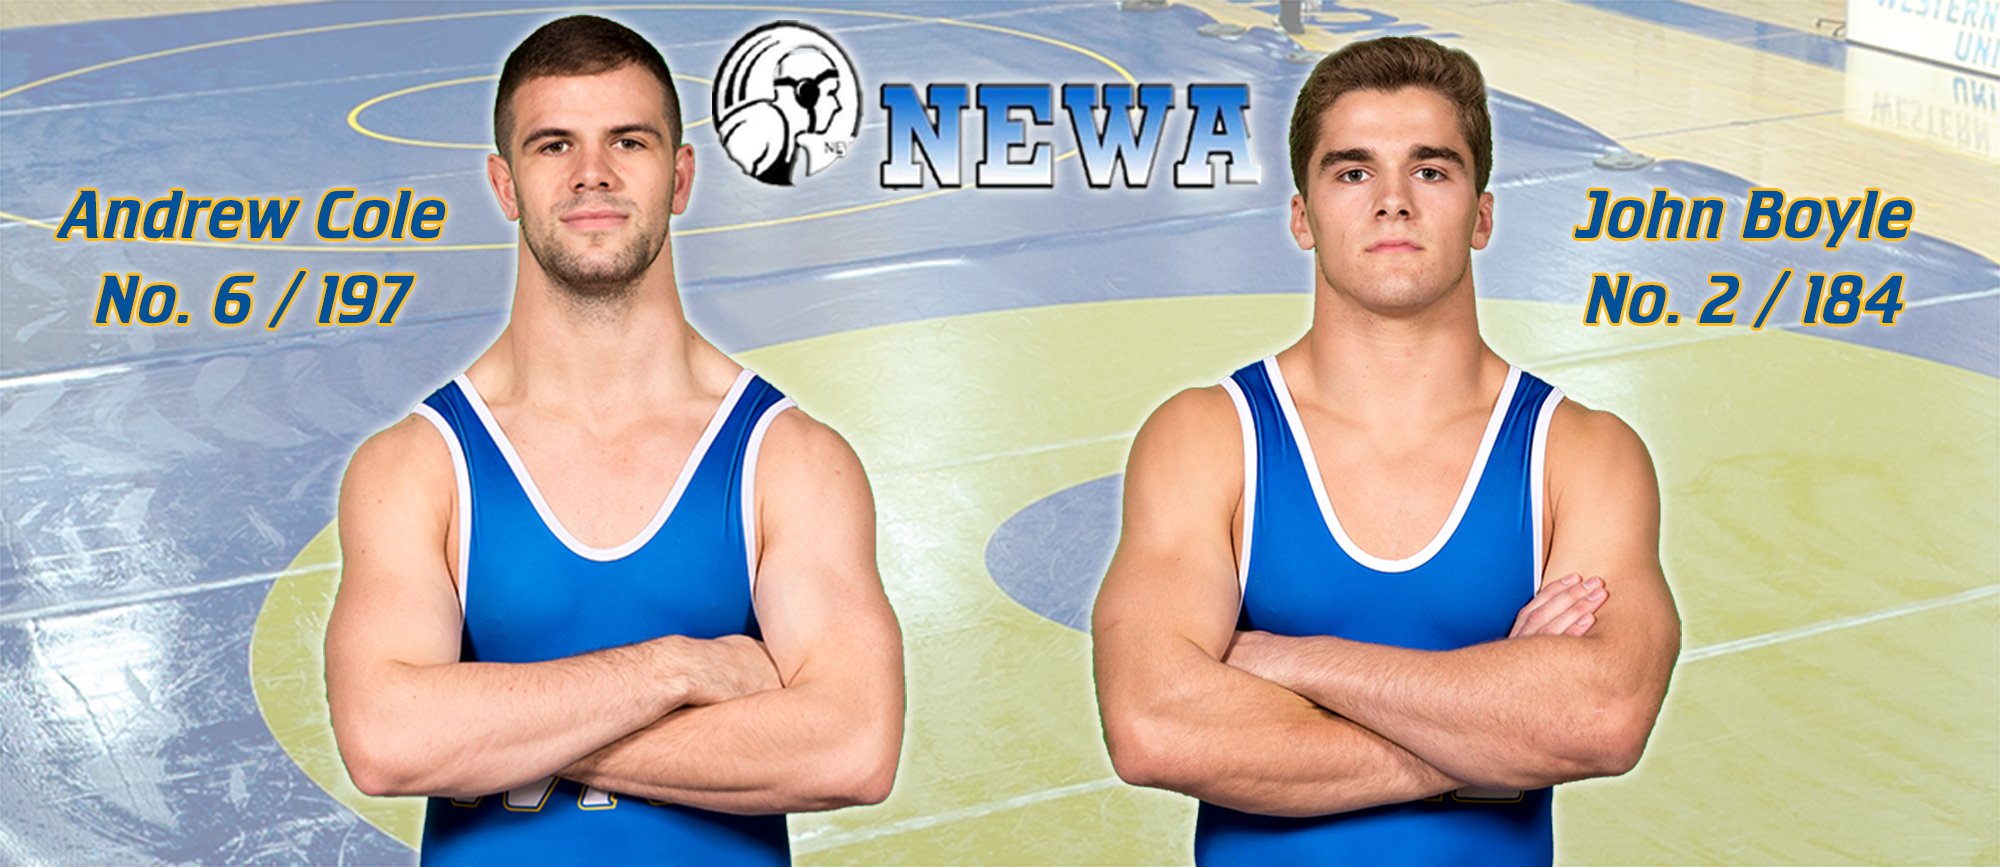 Boyle & Cole Earn Spots in Latest NEWA Individual Rankings